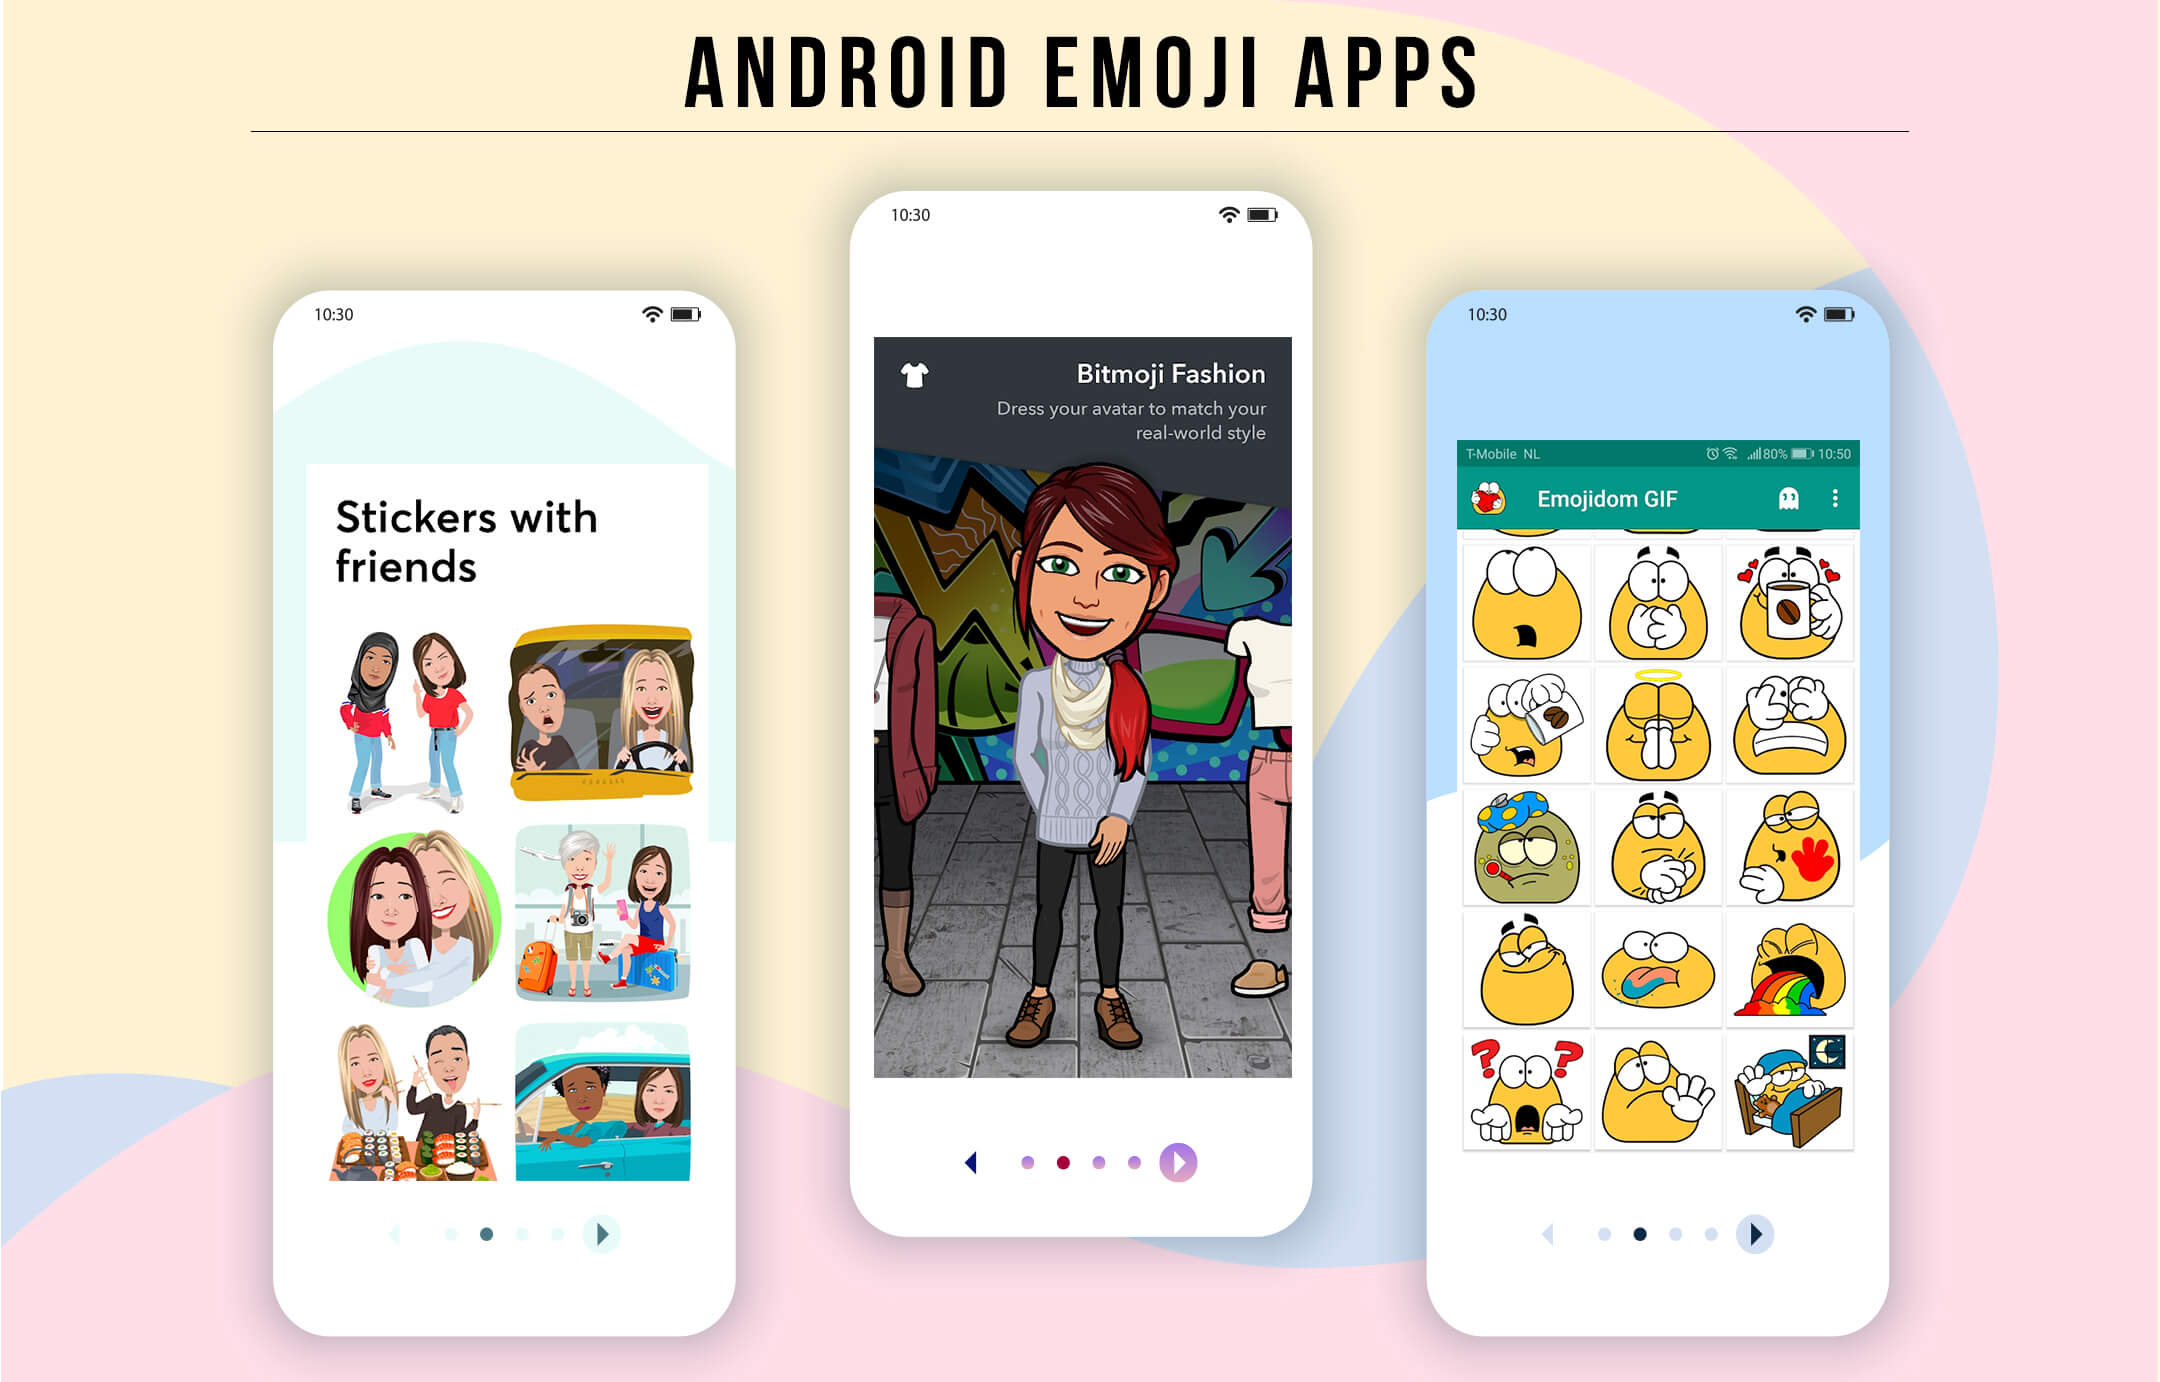 Get The Best Android Emoji Apps On Your Android Phone